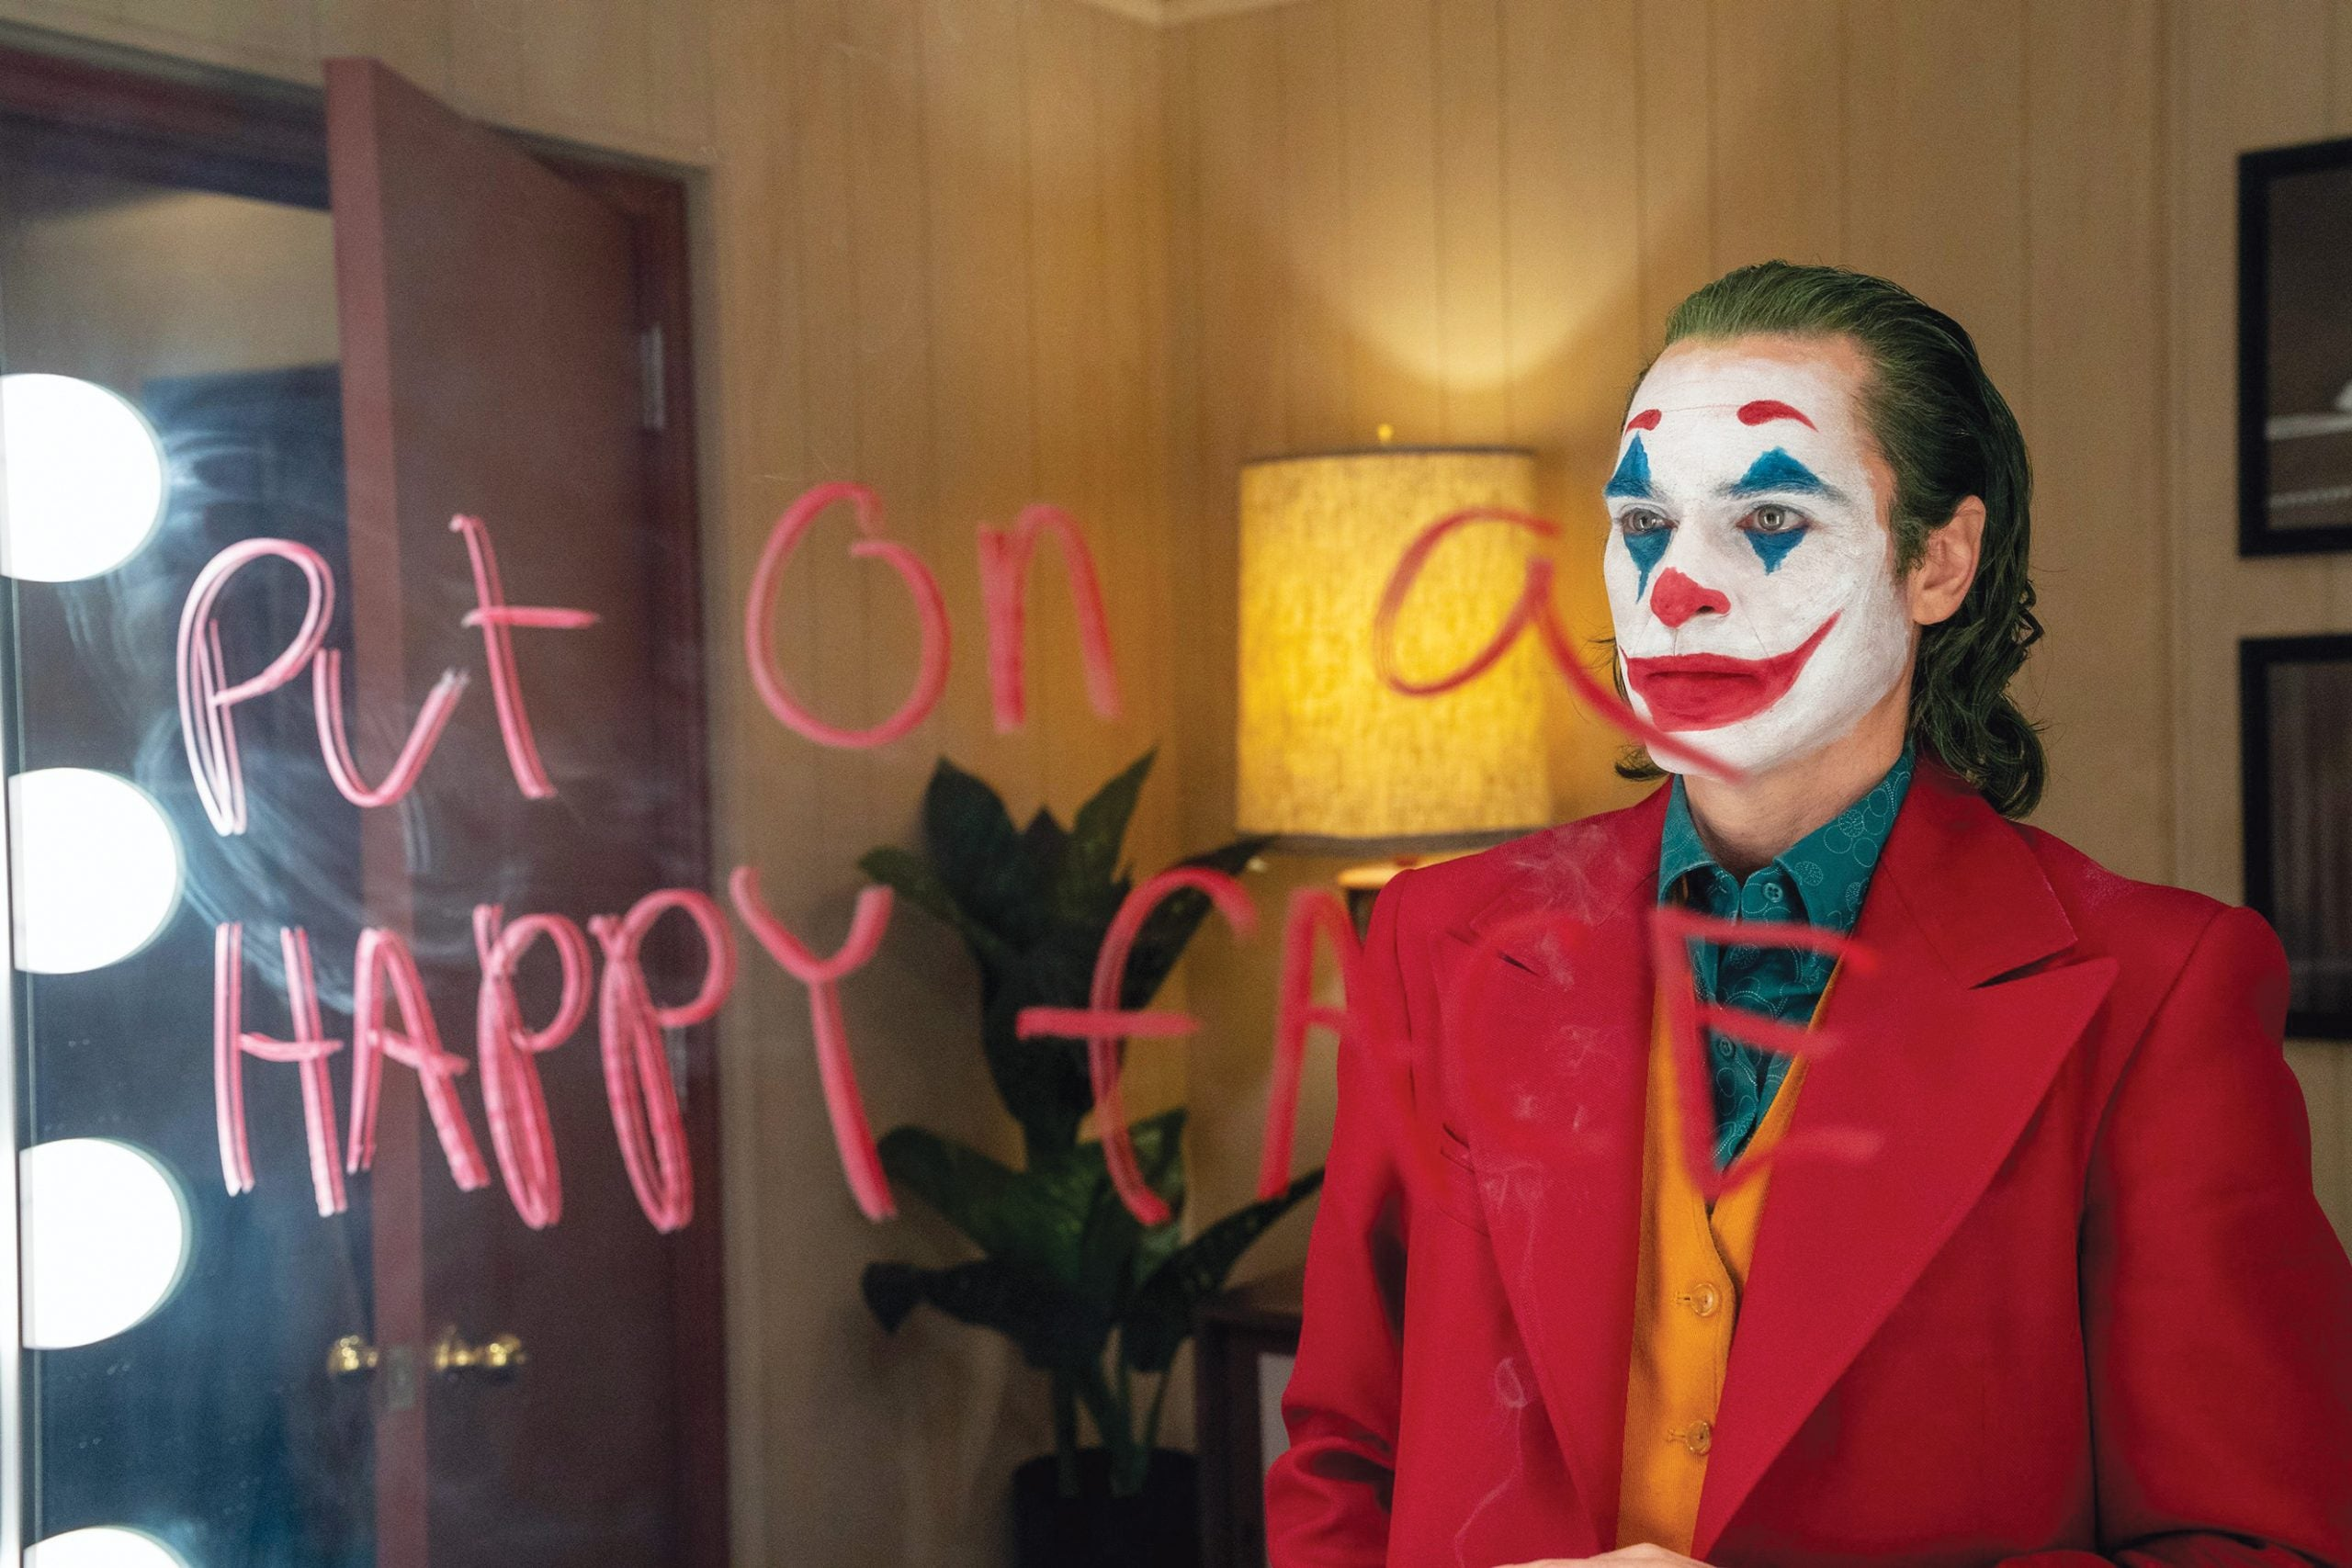 Todd Phillips's Joker: a grim, controversial but ultimately flimsy origin story